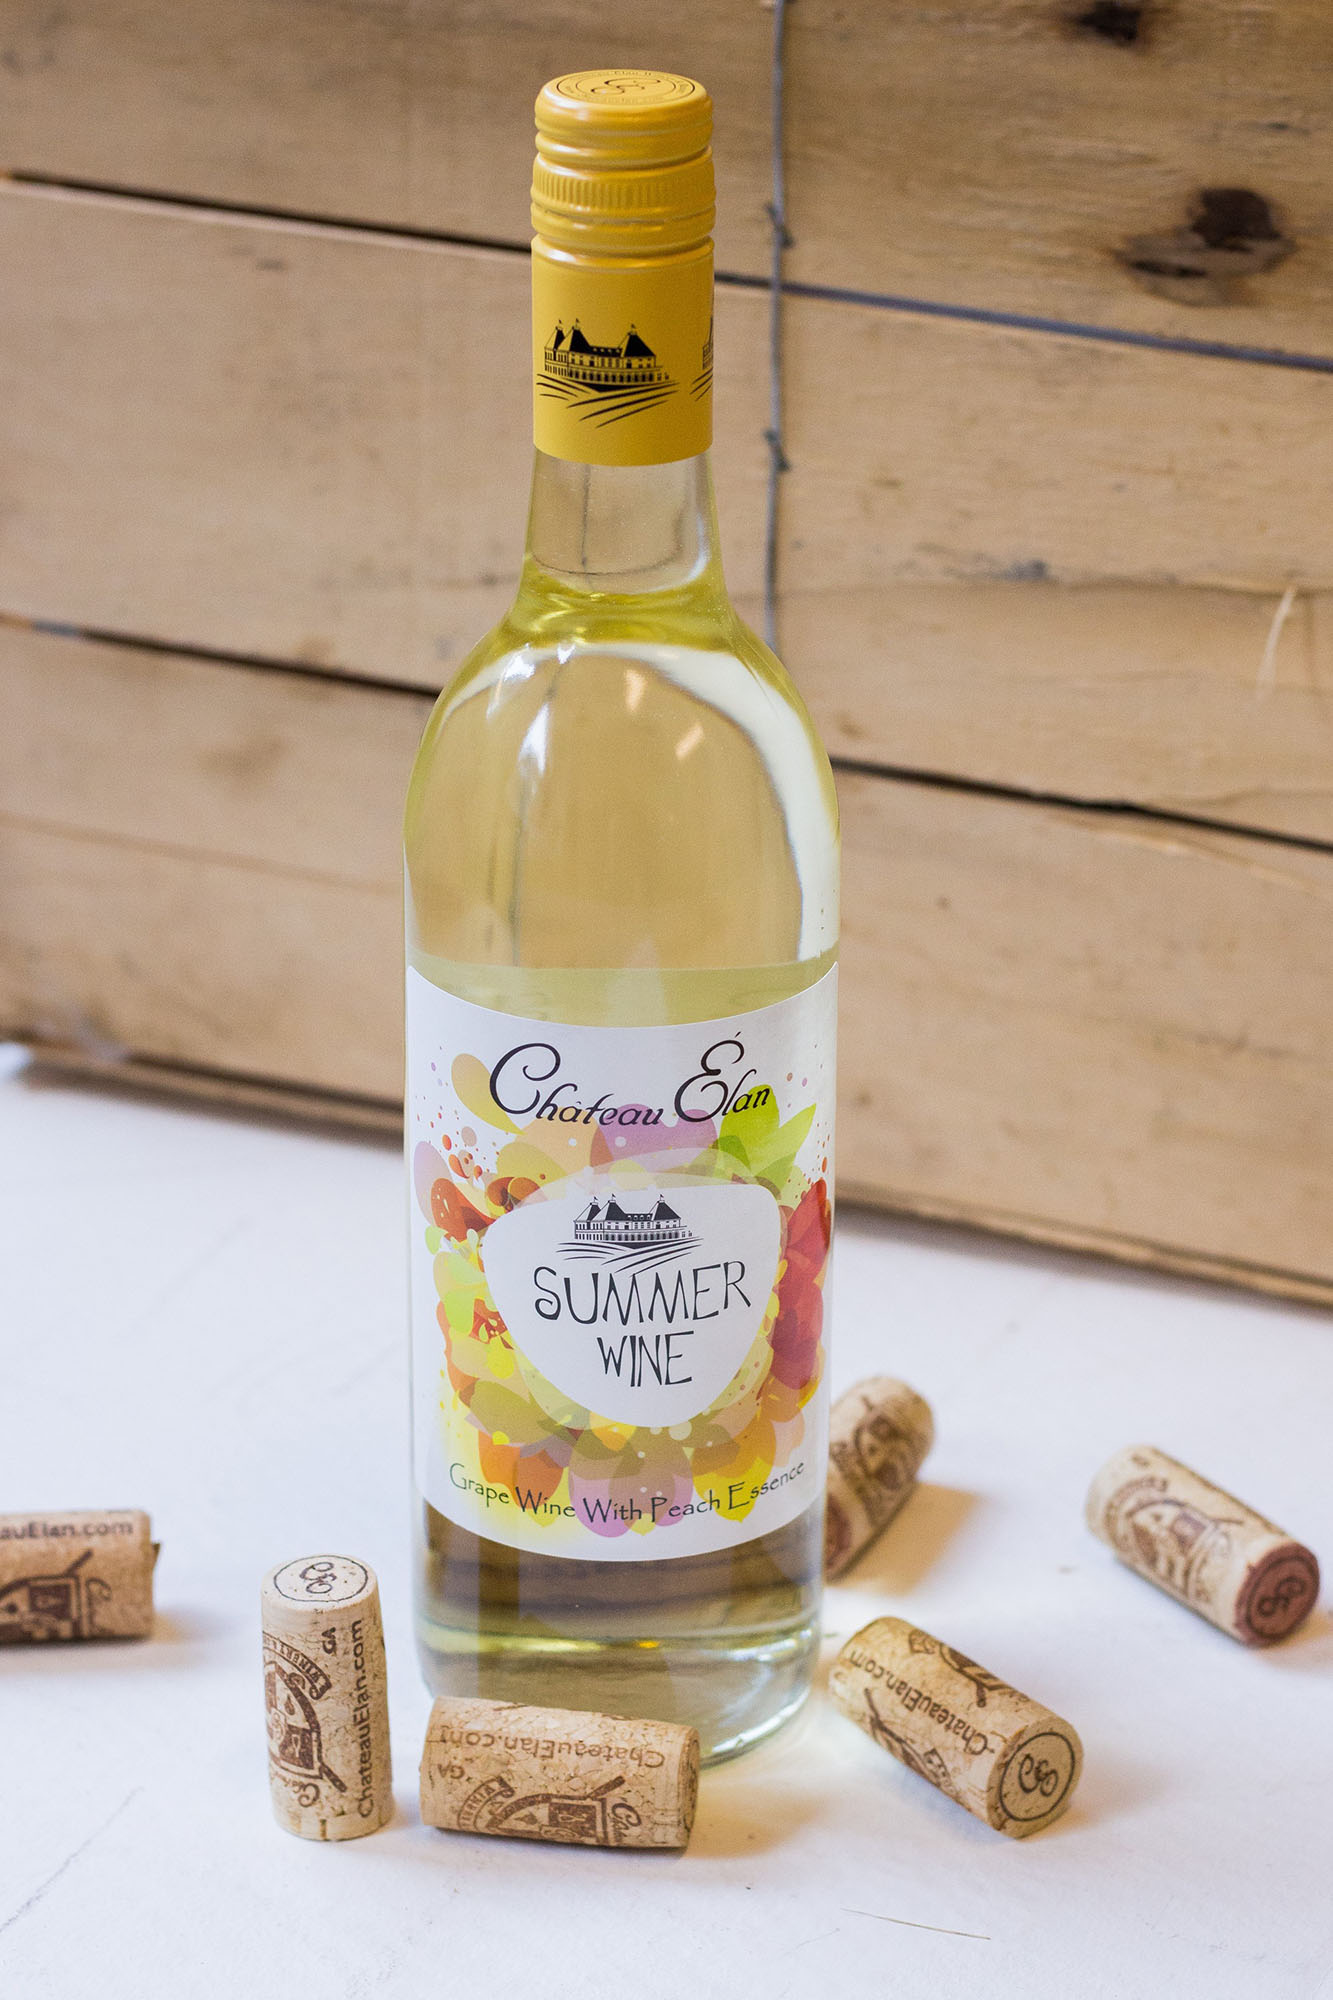 Chateau Elan Summer Wine